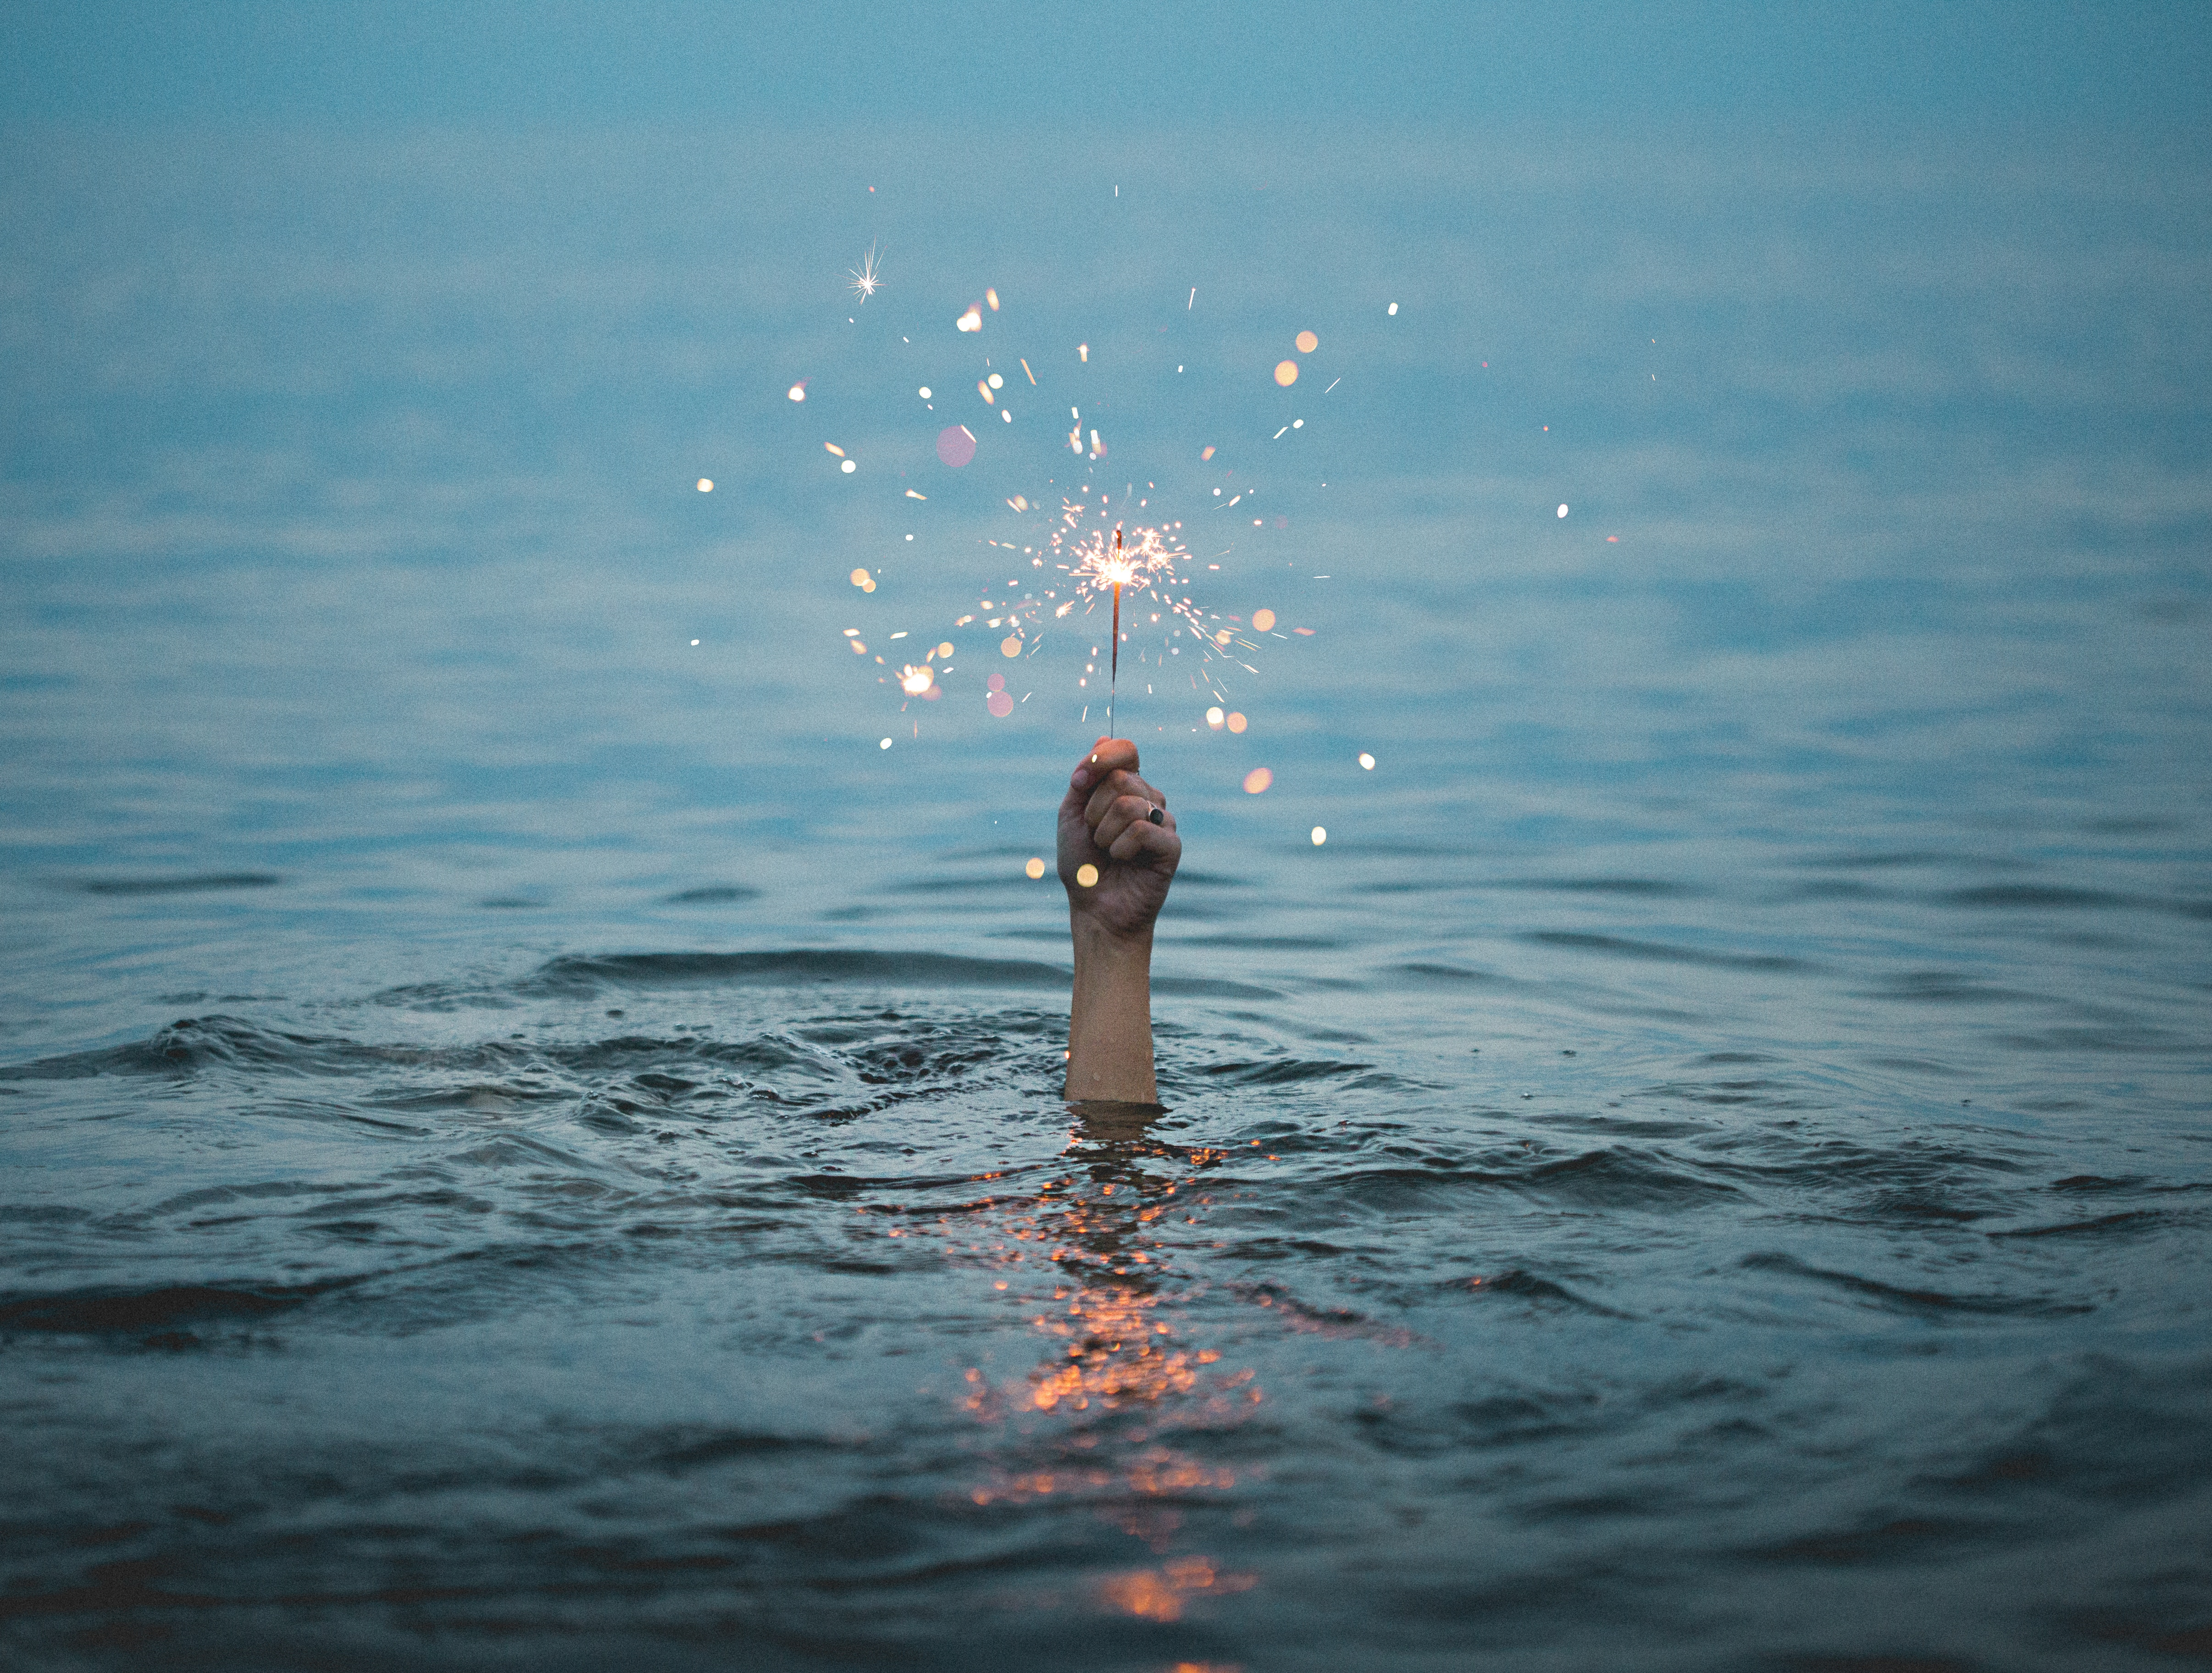 Photo showing a hand sticking above the surface of water, holding a lit sparkler